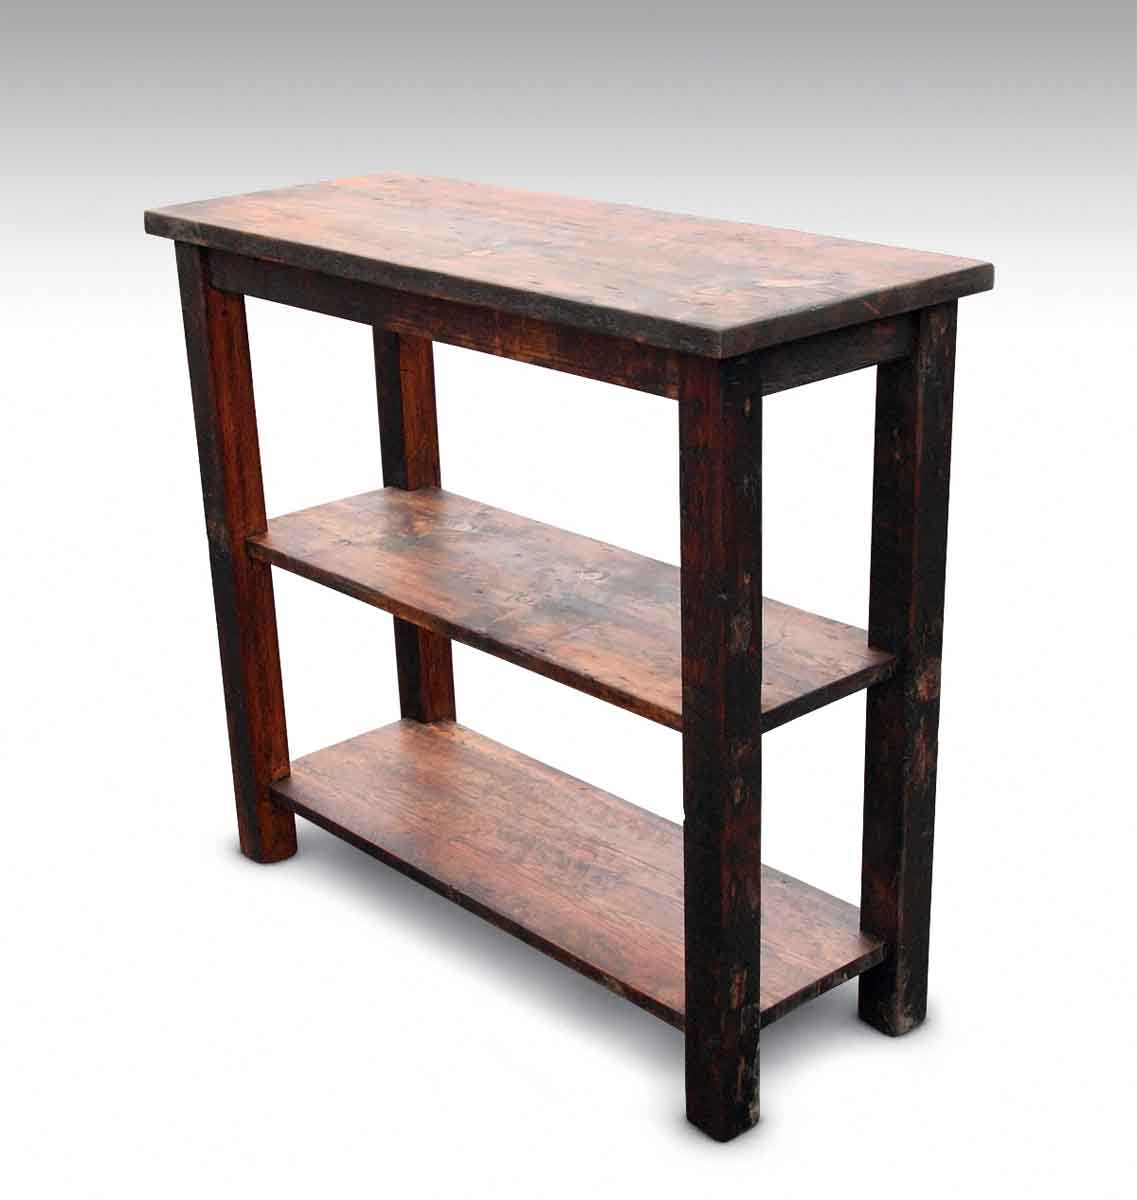 Rustic Pine Serving Table or Console